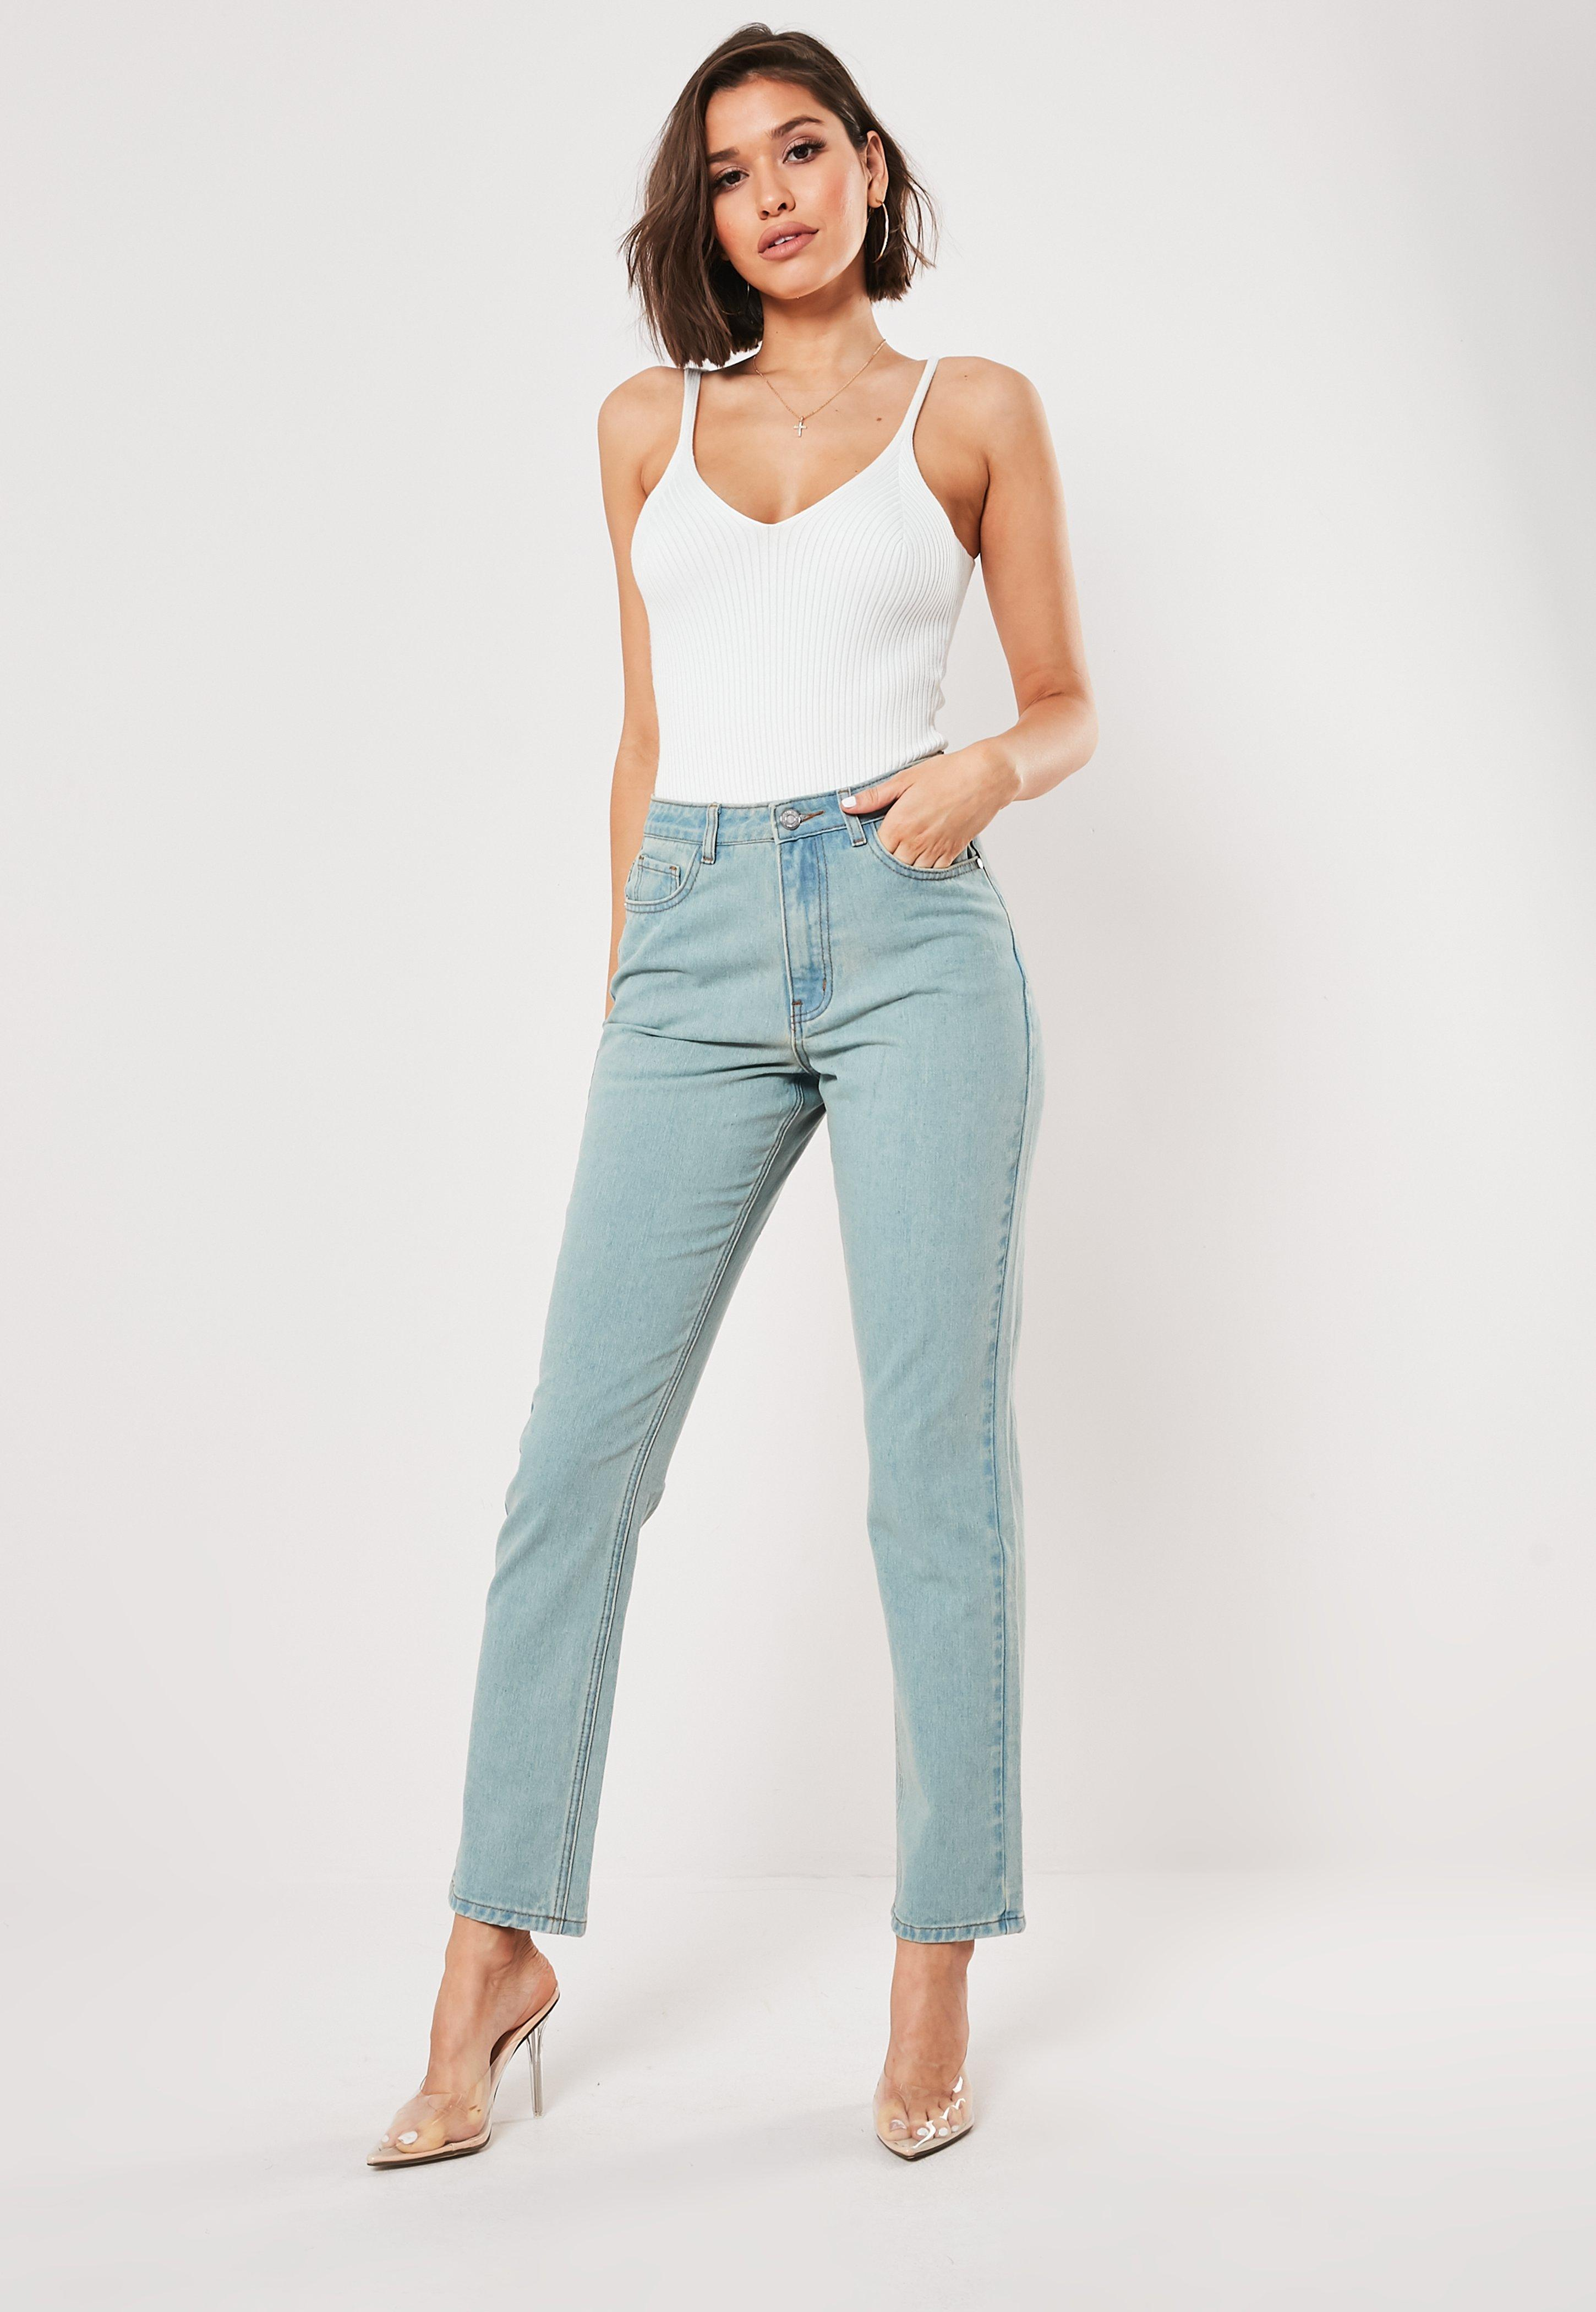 f94b39140ee Jeans | Women's Jeans Online - Missguided